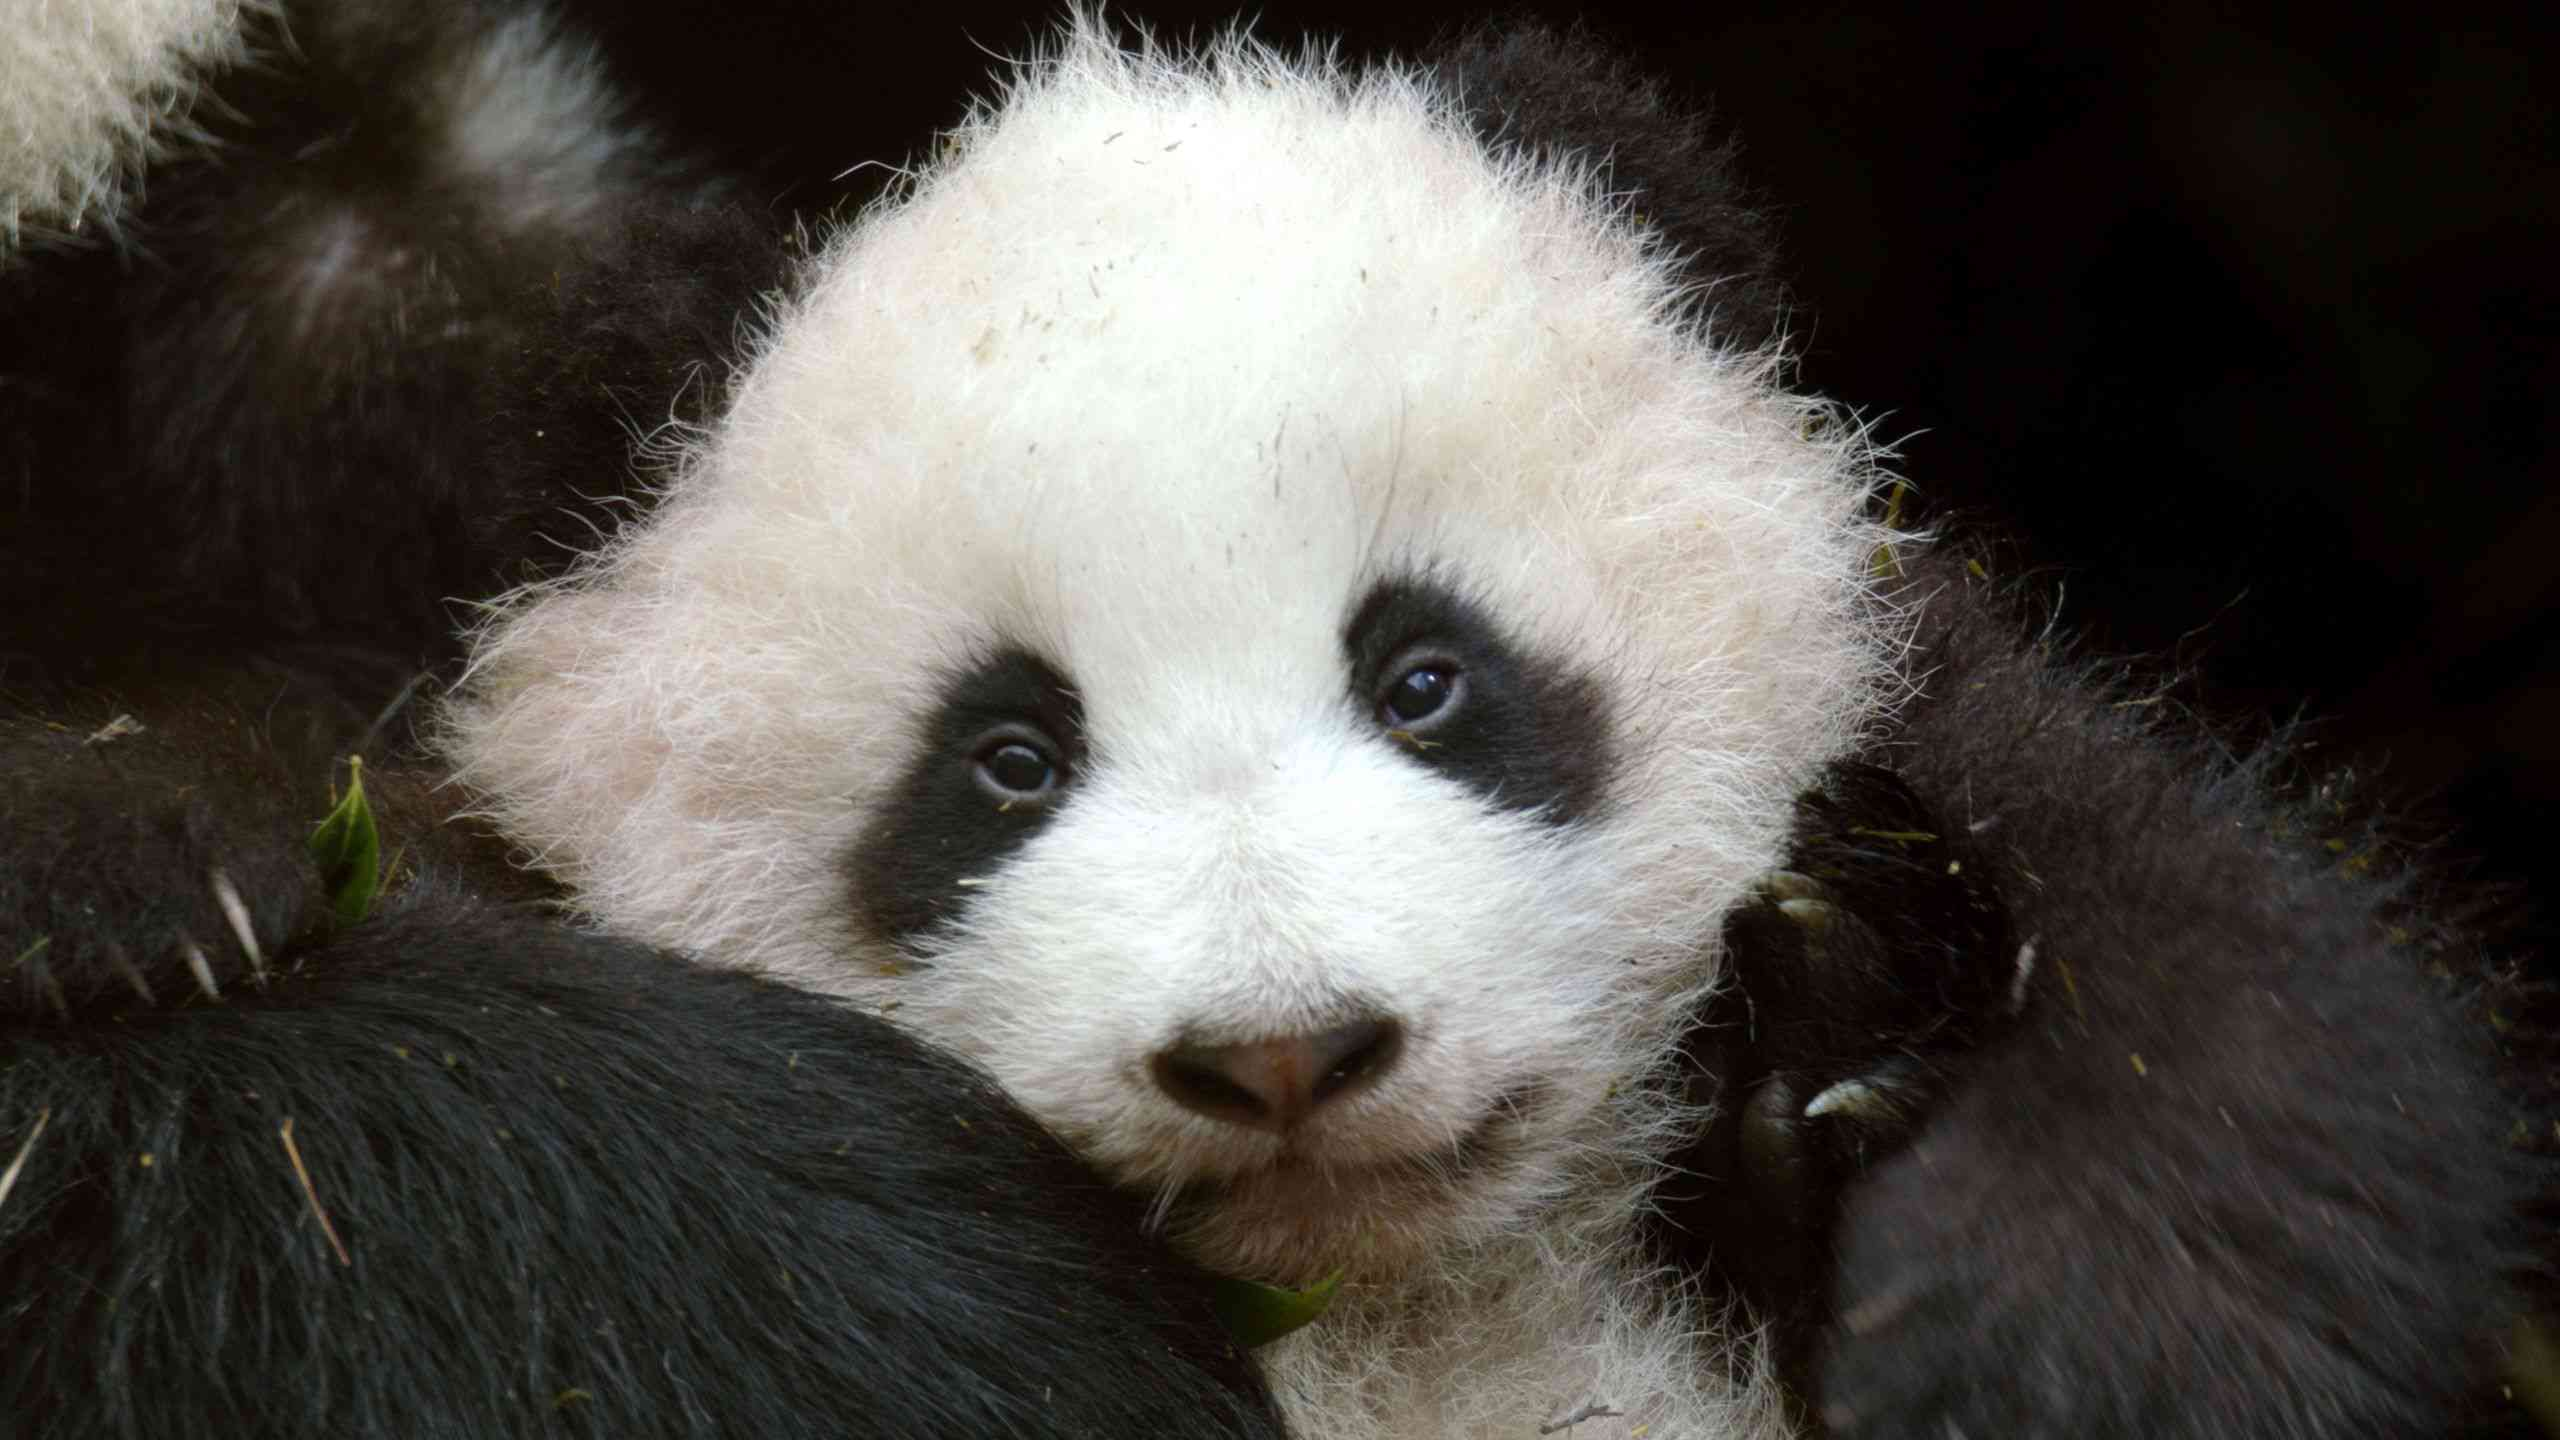 Giant panda cub training for reintroduction into the wild.